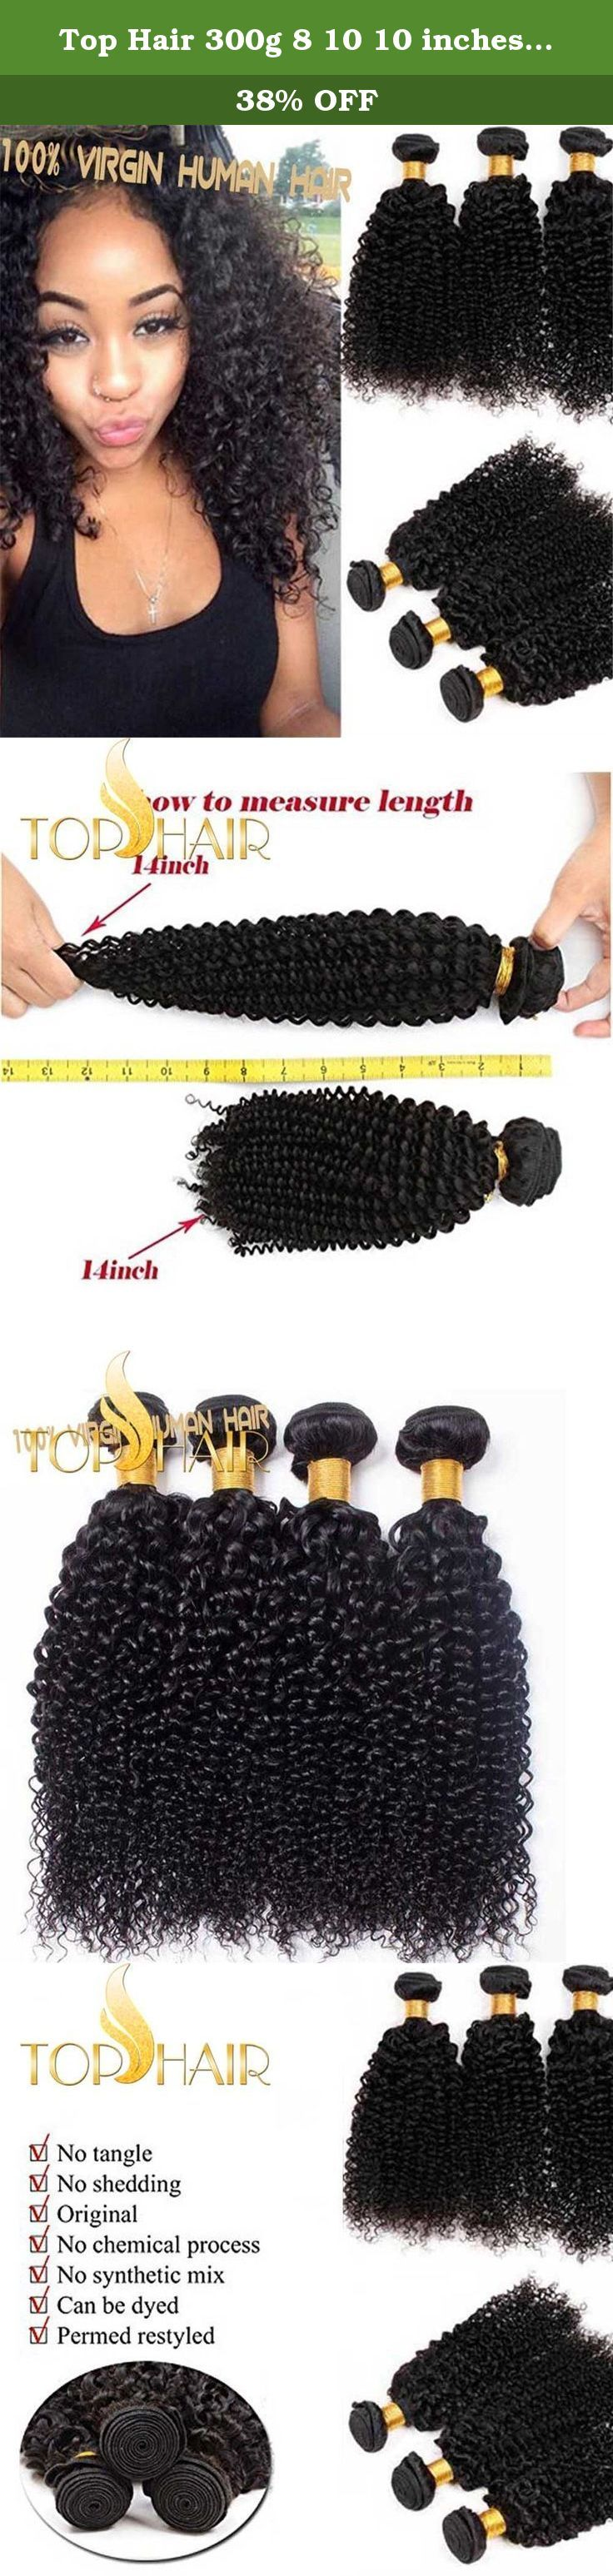 Top Hair 300g 8 10 10 inches kinky curly Unprocessed Virgin Brazilian Curly Weaves Afro Kinky Curly Human Hair Extensions Natural Black Color 3 bundles. Top Hair Unprocessed Human Virgin Hair Weaves Extension Hair Parameter 1)Hair Material: 100% Unprocessed Virgin Human Hair 2)Hair Color: 1b Natural 3)Unit Weight:98-100g(3.35-3.5oz)/bundle 4)Hair Lengths Available: from 10 to 24 inch,for Wavy and Curly Hair, we Measure the Length when Stretched to Straight 5)Hair Texture:Straight,Body...